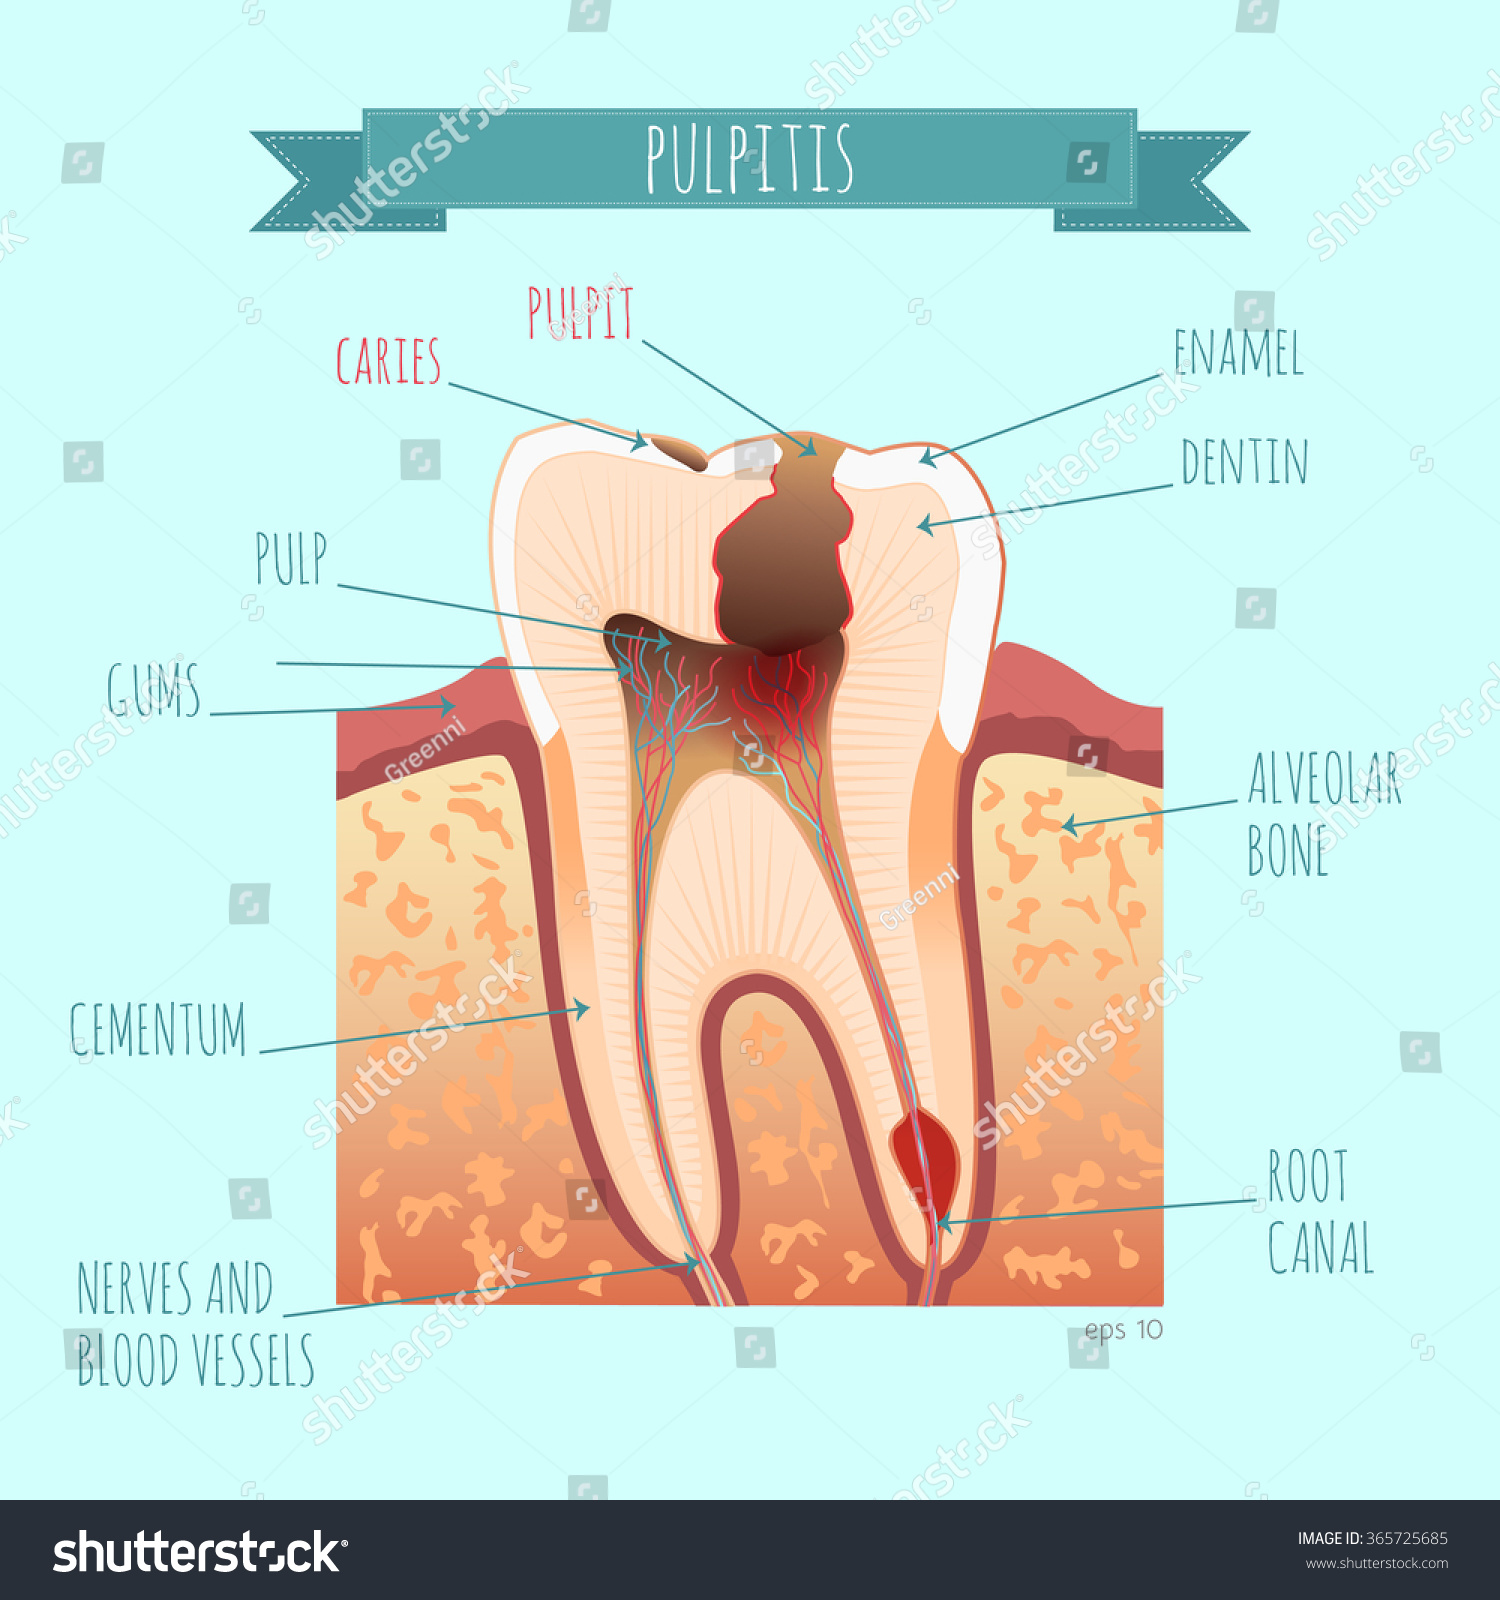 Vector Tooth Anatomy Caries Pulpit Your Stock-Vektorgrafik 365725685 ...